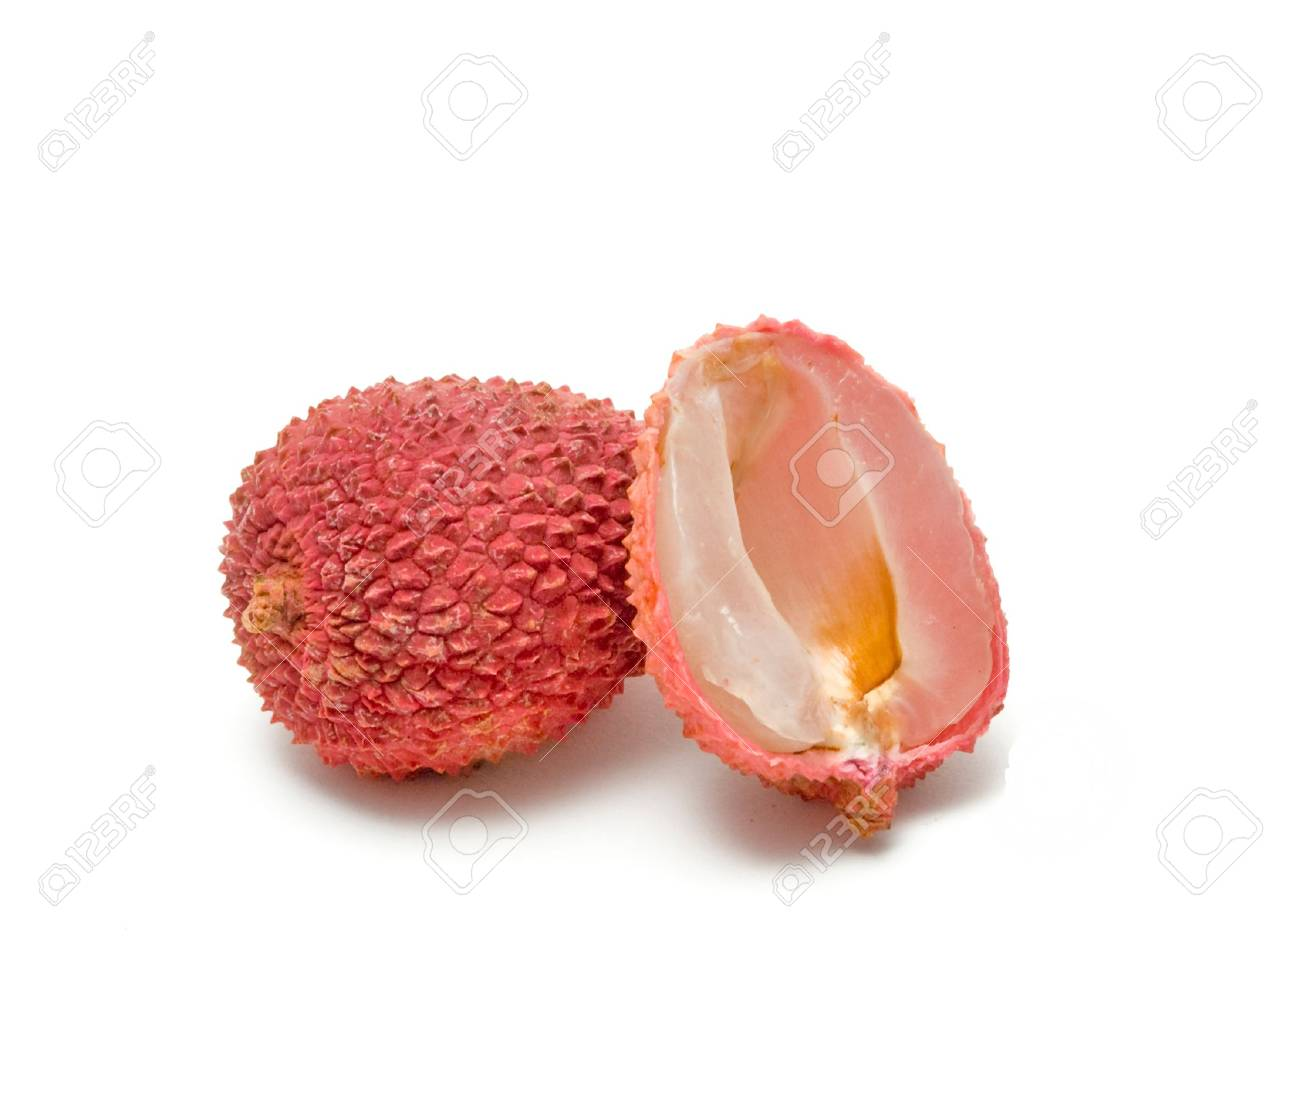 Lychee and its section isolated on white background Stock Photo - 5175491